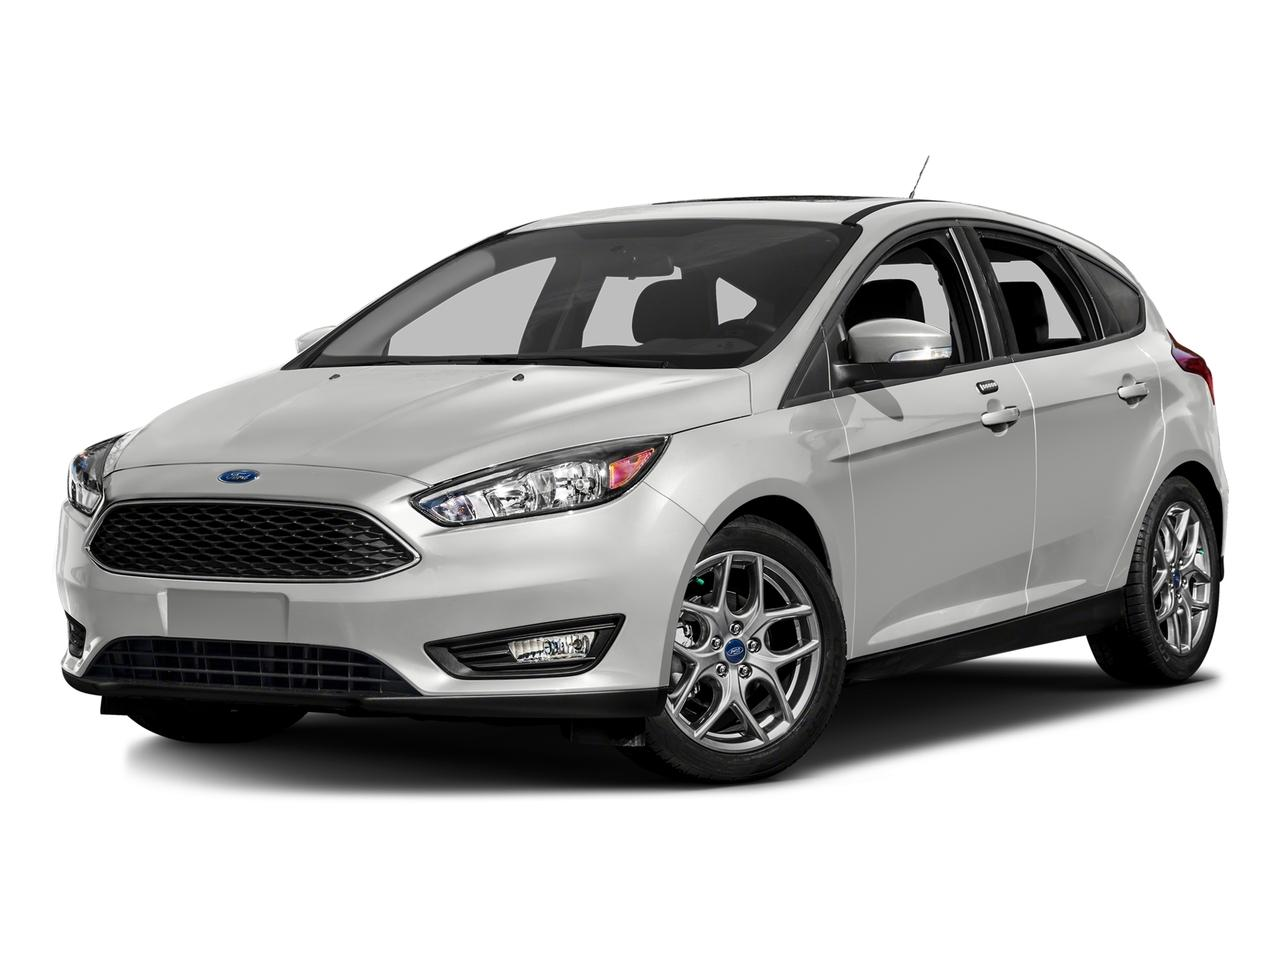 2016 Ford Focus Vehicle Photo in Medina, OH 44256